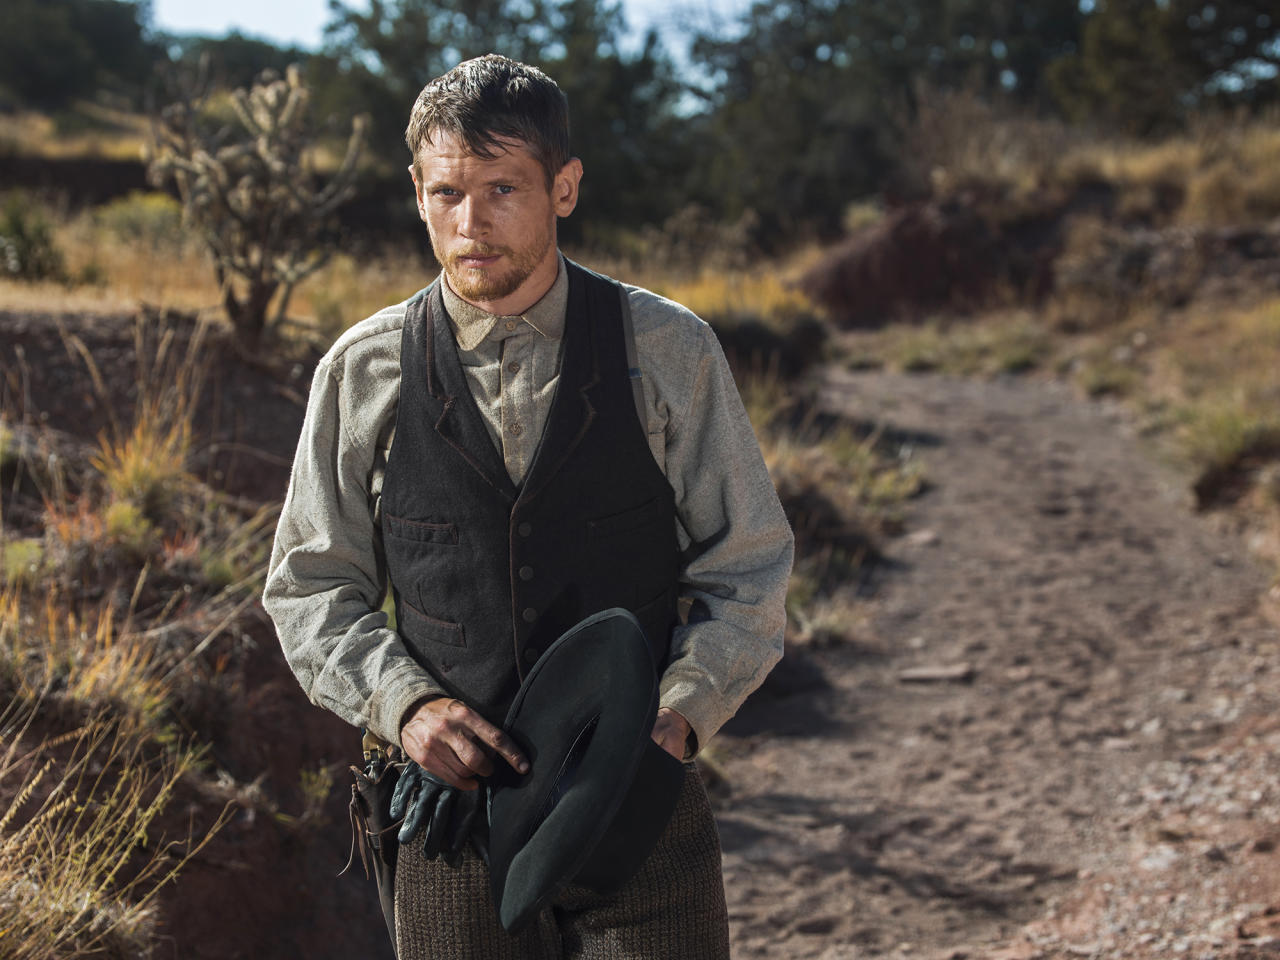 <p>That man is Roy Goode, who's good with a gun and Alice's wild horses. Once presumed dead, he's returned now to steal all the spoils from his former gang's latest train robbery — hence his injuries.<br />(Photo: James Minchin/Netflix) </p>